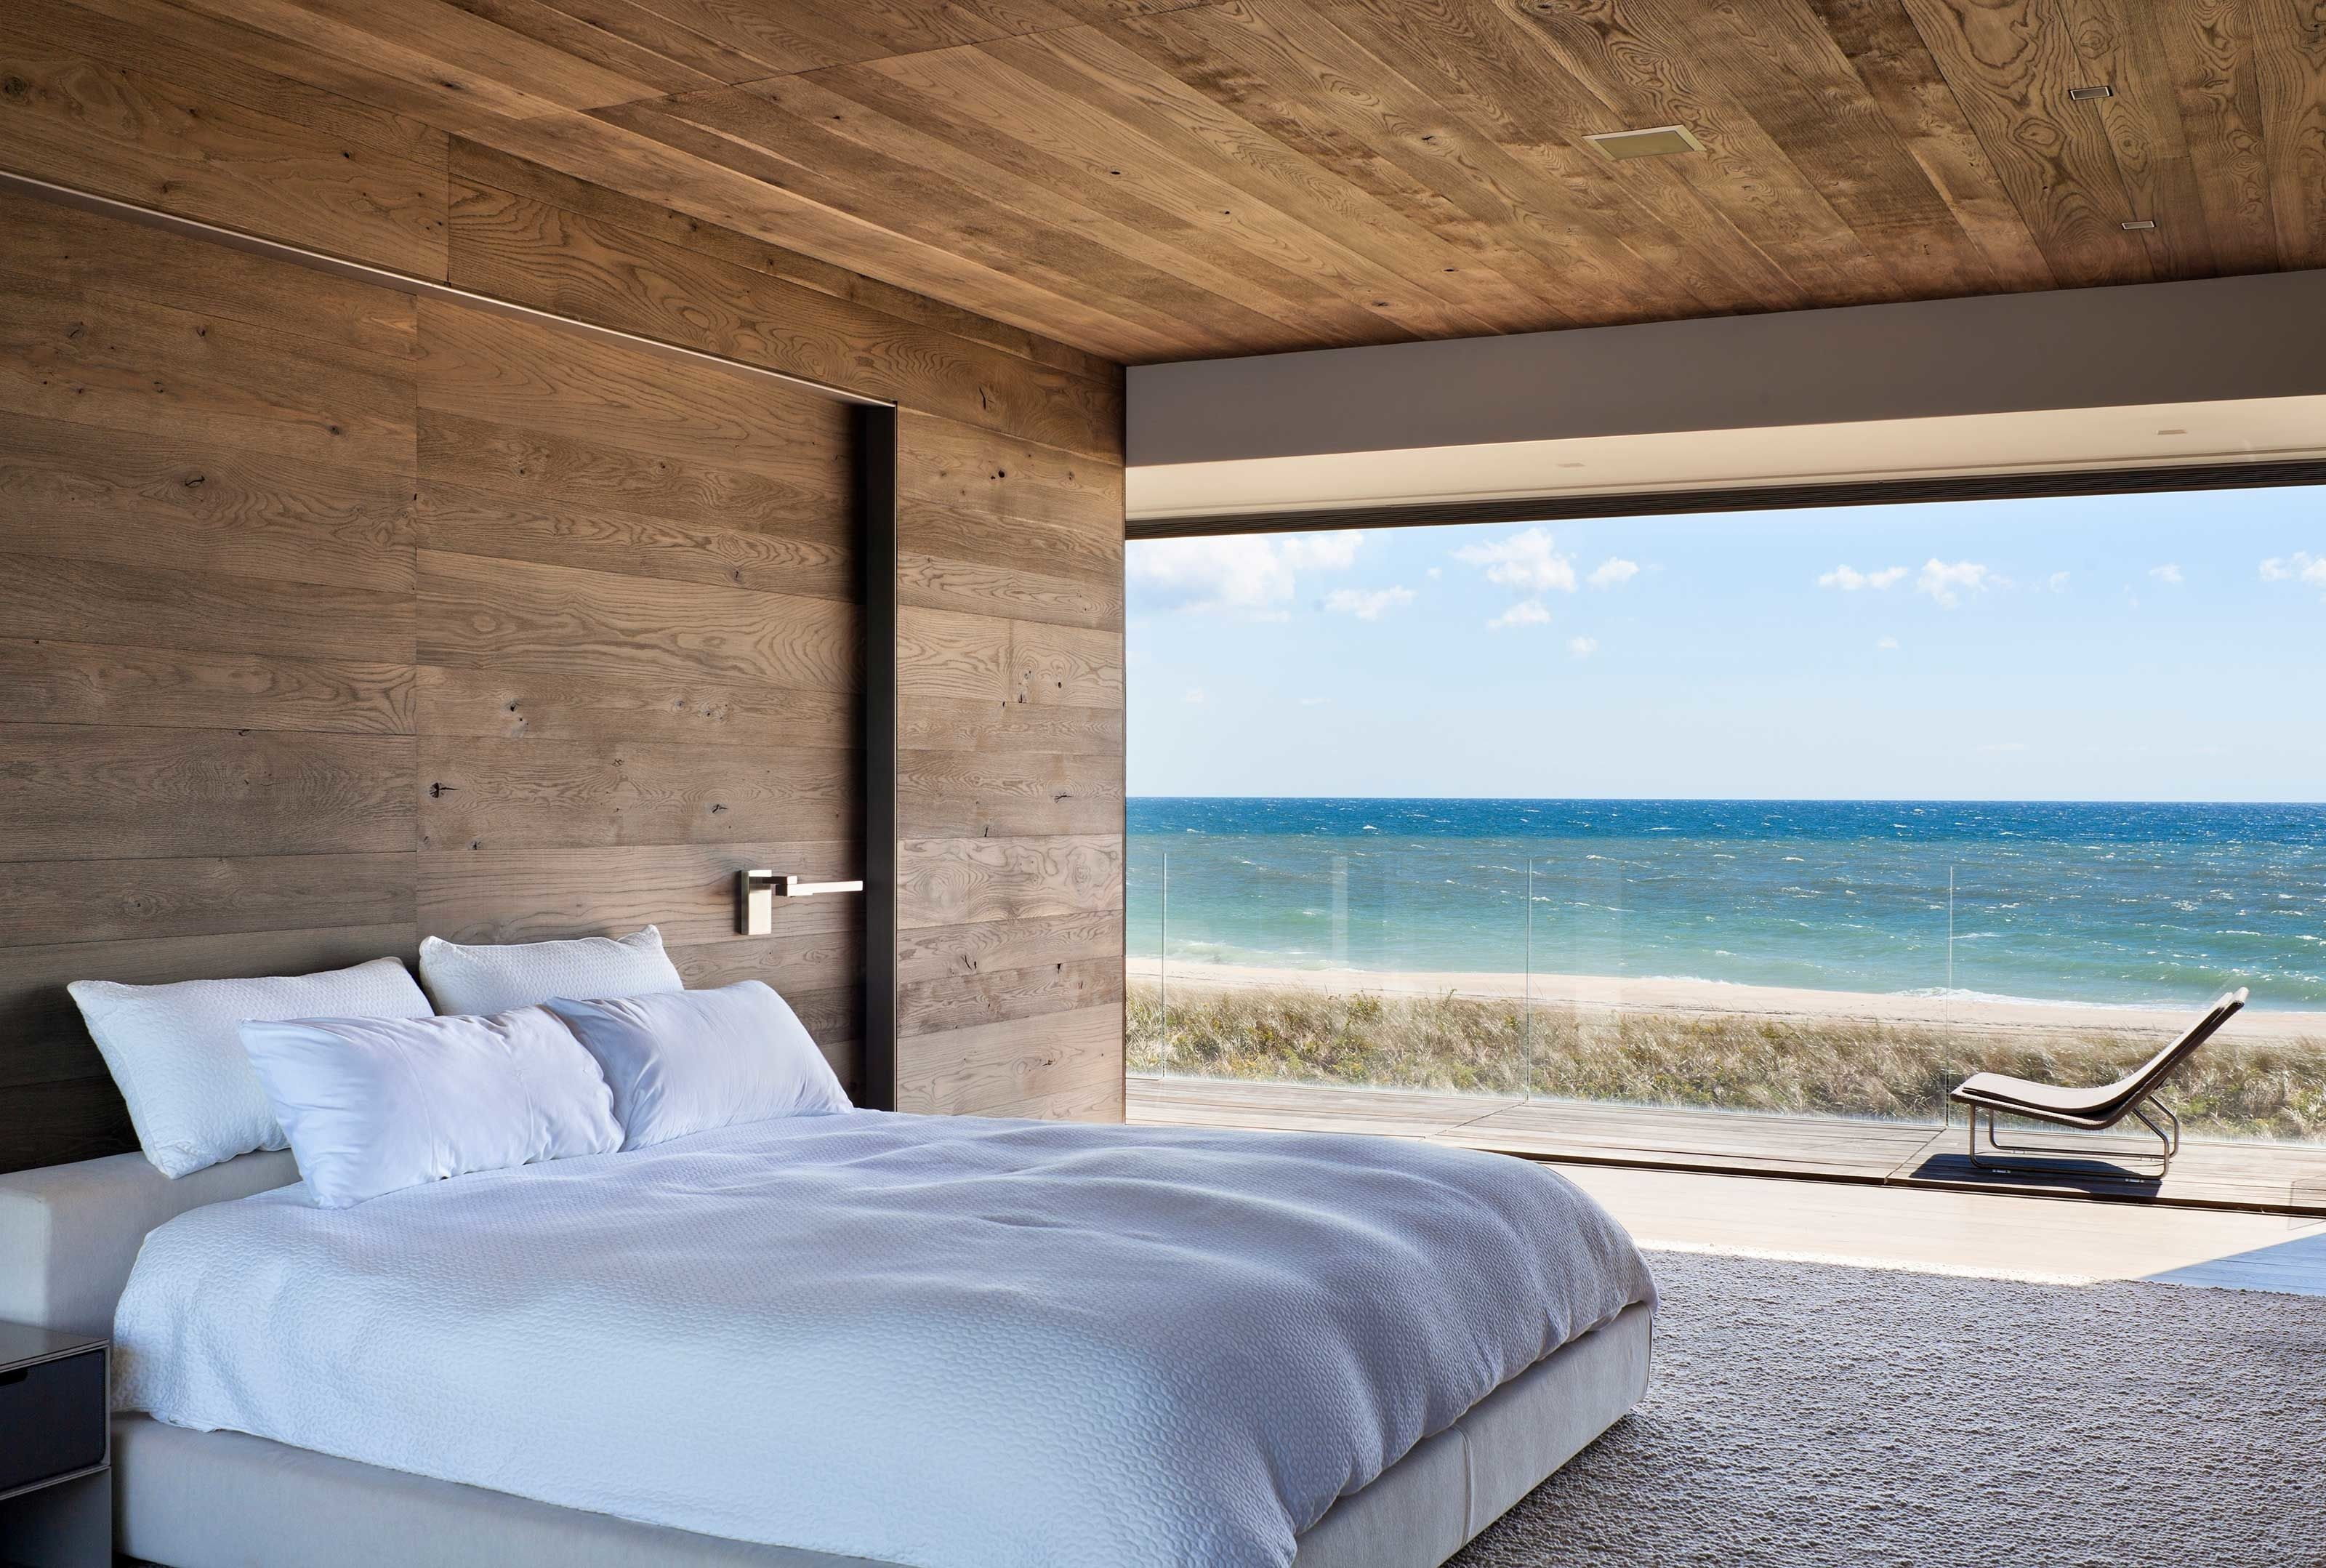 Home interior pic tour this stunning beachfront getaway in the hamptons  hamptons